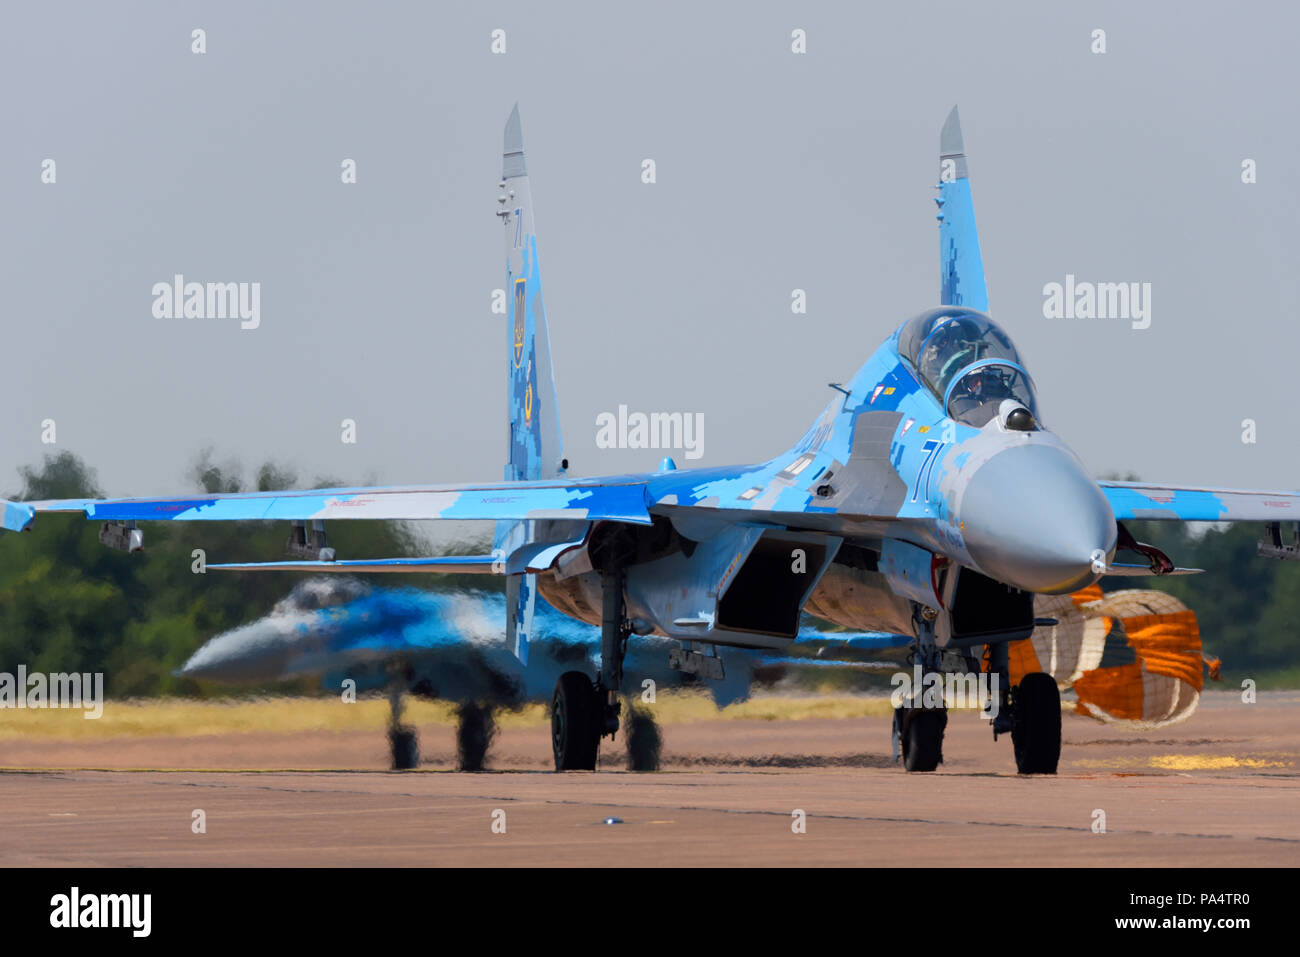 Ukrainian Air Force Sukhoi Su27 Flanker fighter jets taxiing in at the Royal International Air Tattoo RIAT 2018 RAF Fairford, UK. Dragging brake chute - Stock Image